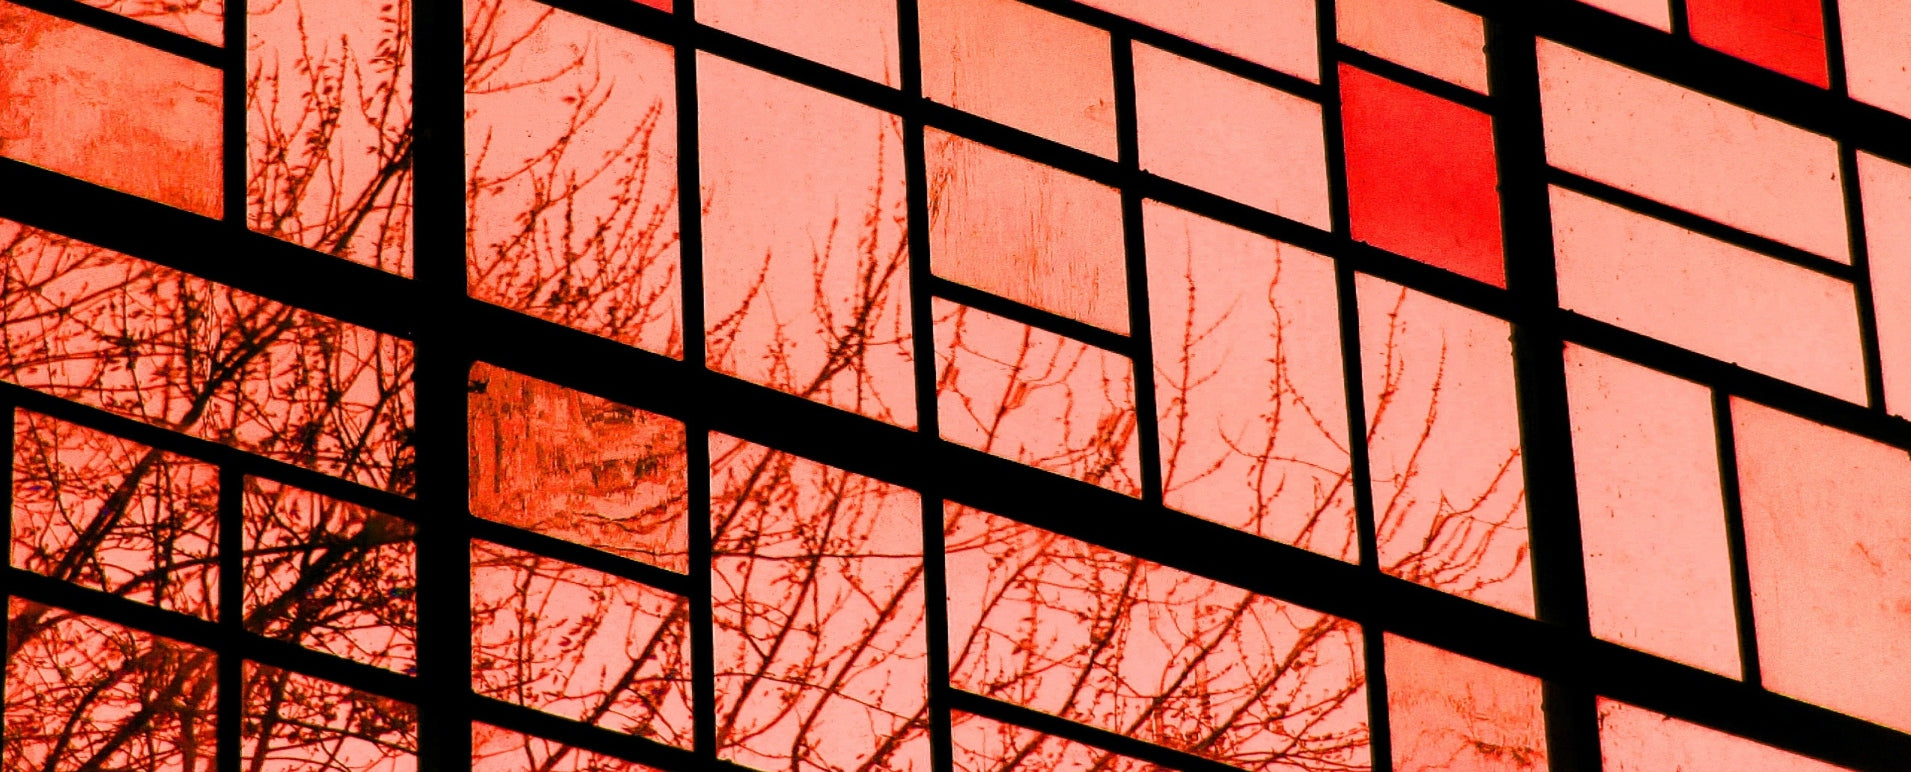 Pink and Red Stained Glass with Silhouette of a Tree.